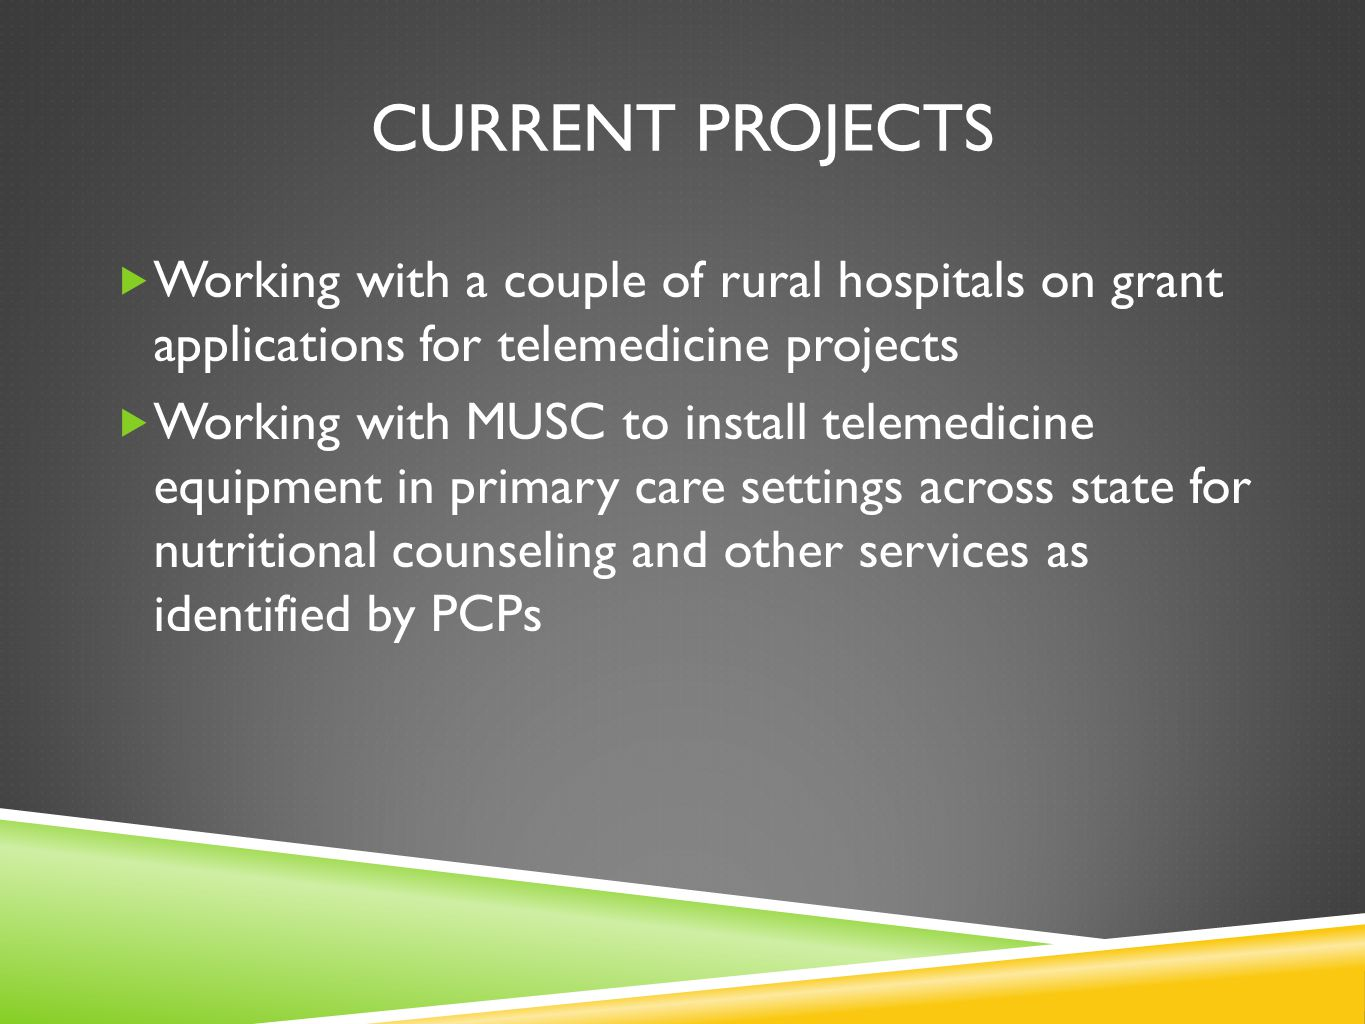 Current projects Working with a couple of rural hospitals on grant applications for telemedicine projects.